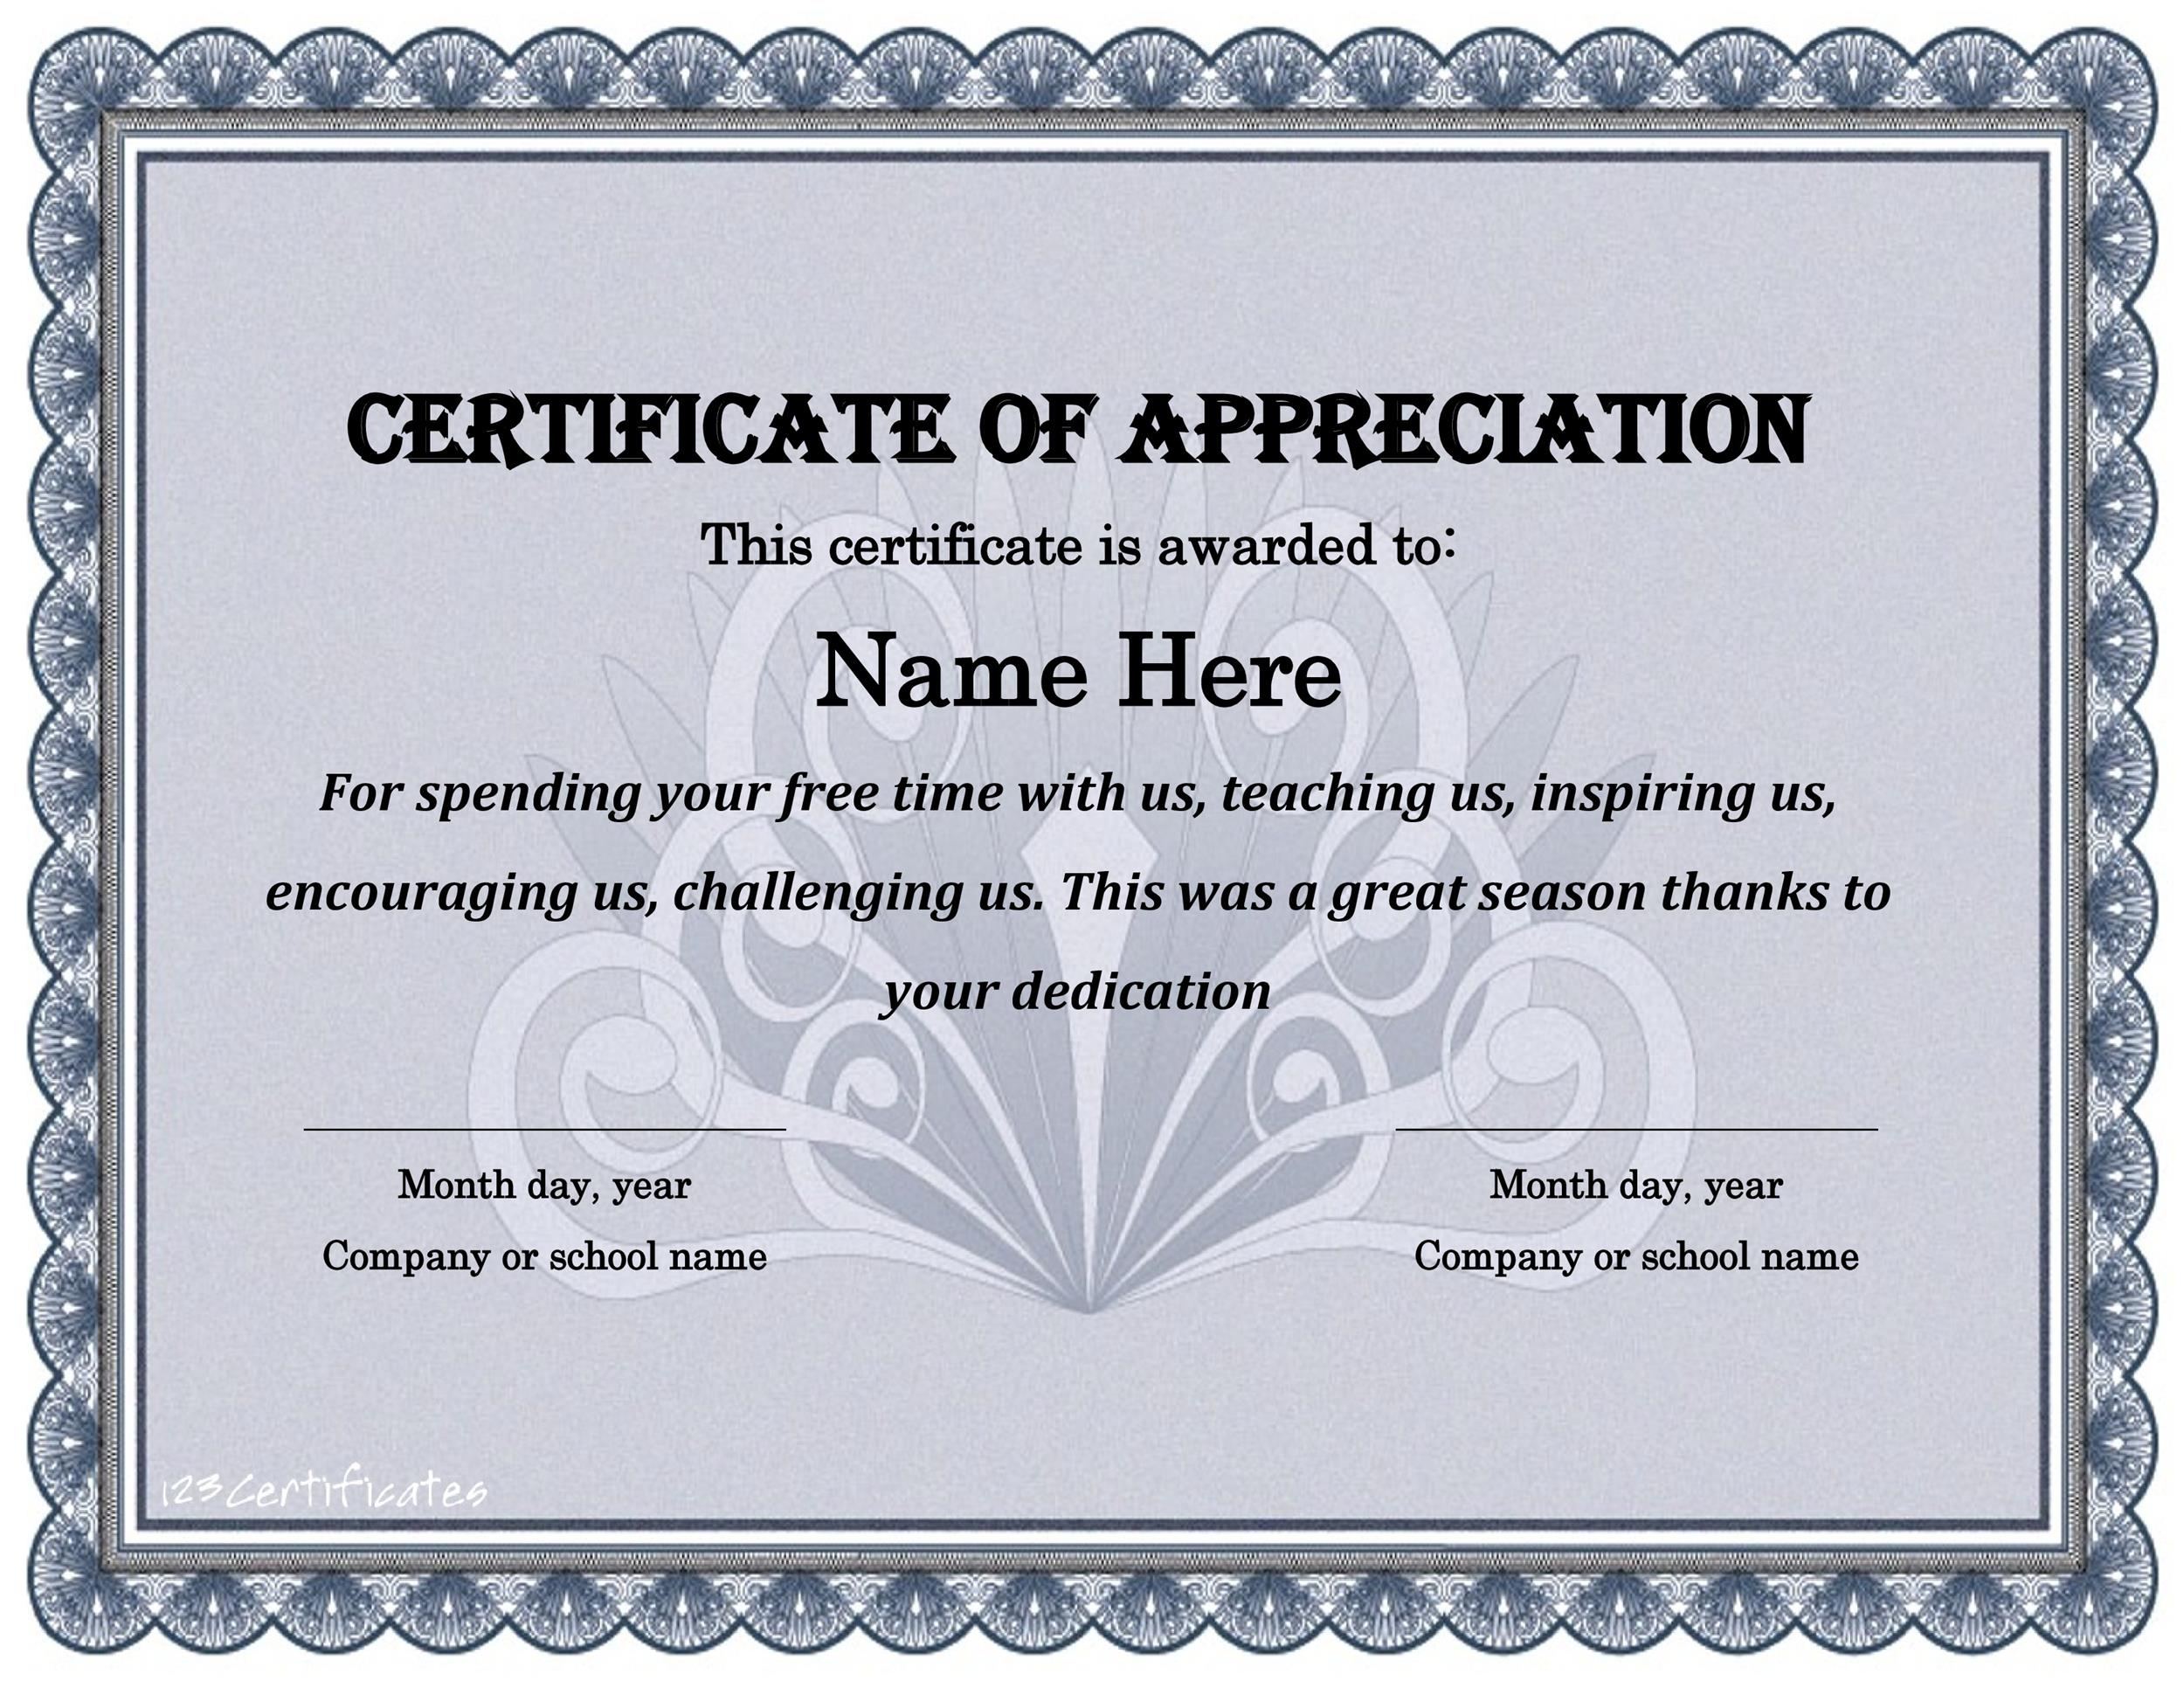 30 free certificate of appreciation templates and letters printable certificate of appreciation 21 yelopaper Choice Image